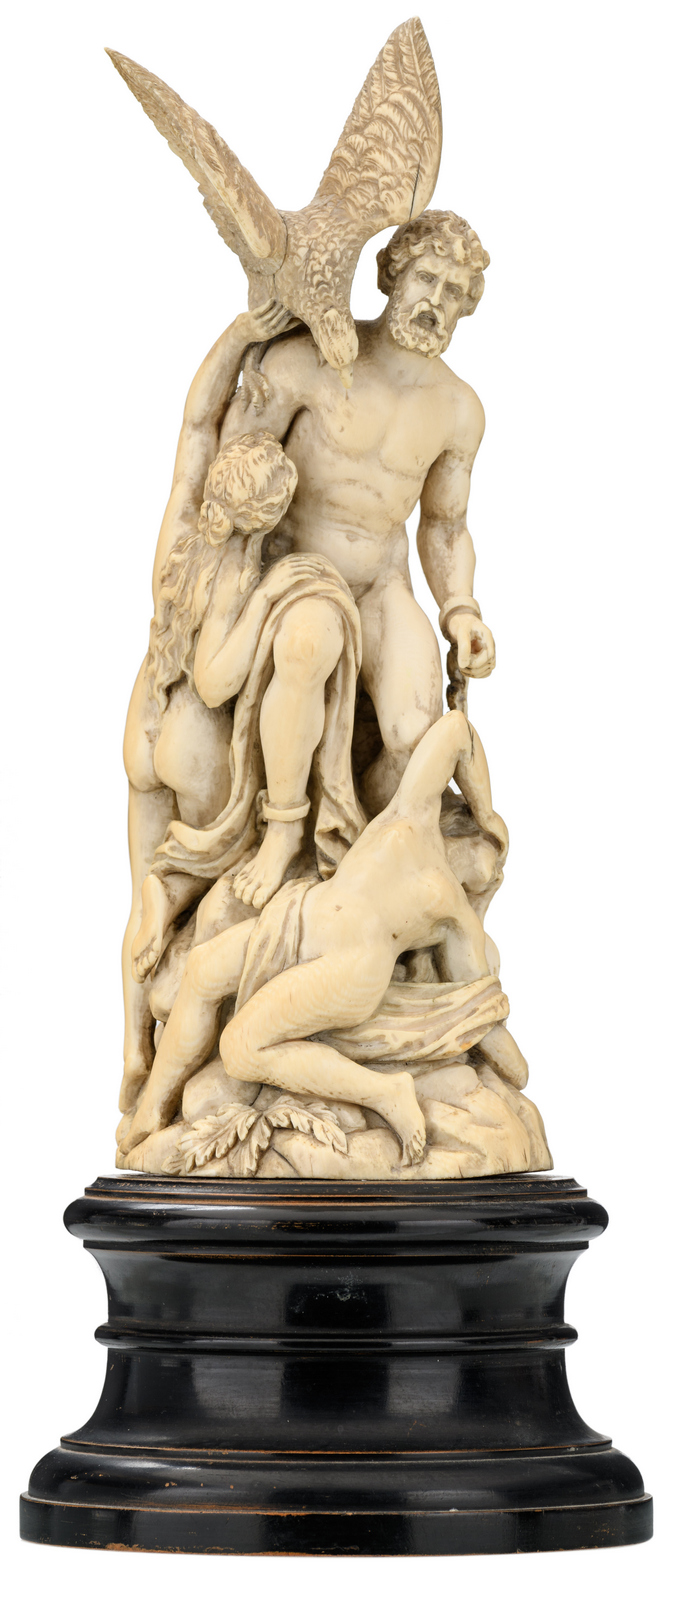 A second half of the 19thC ivory sculpture depicting the punishment of Prometheus, on an ebonized wooden base, probably Paris or Dieppe, H 26,5 (without base) - 34,5 cm (with base)